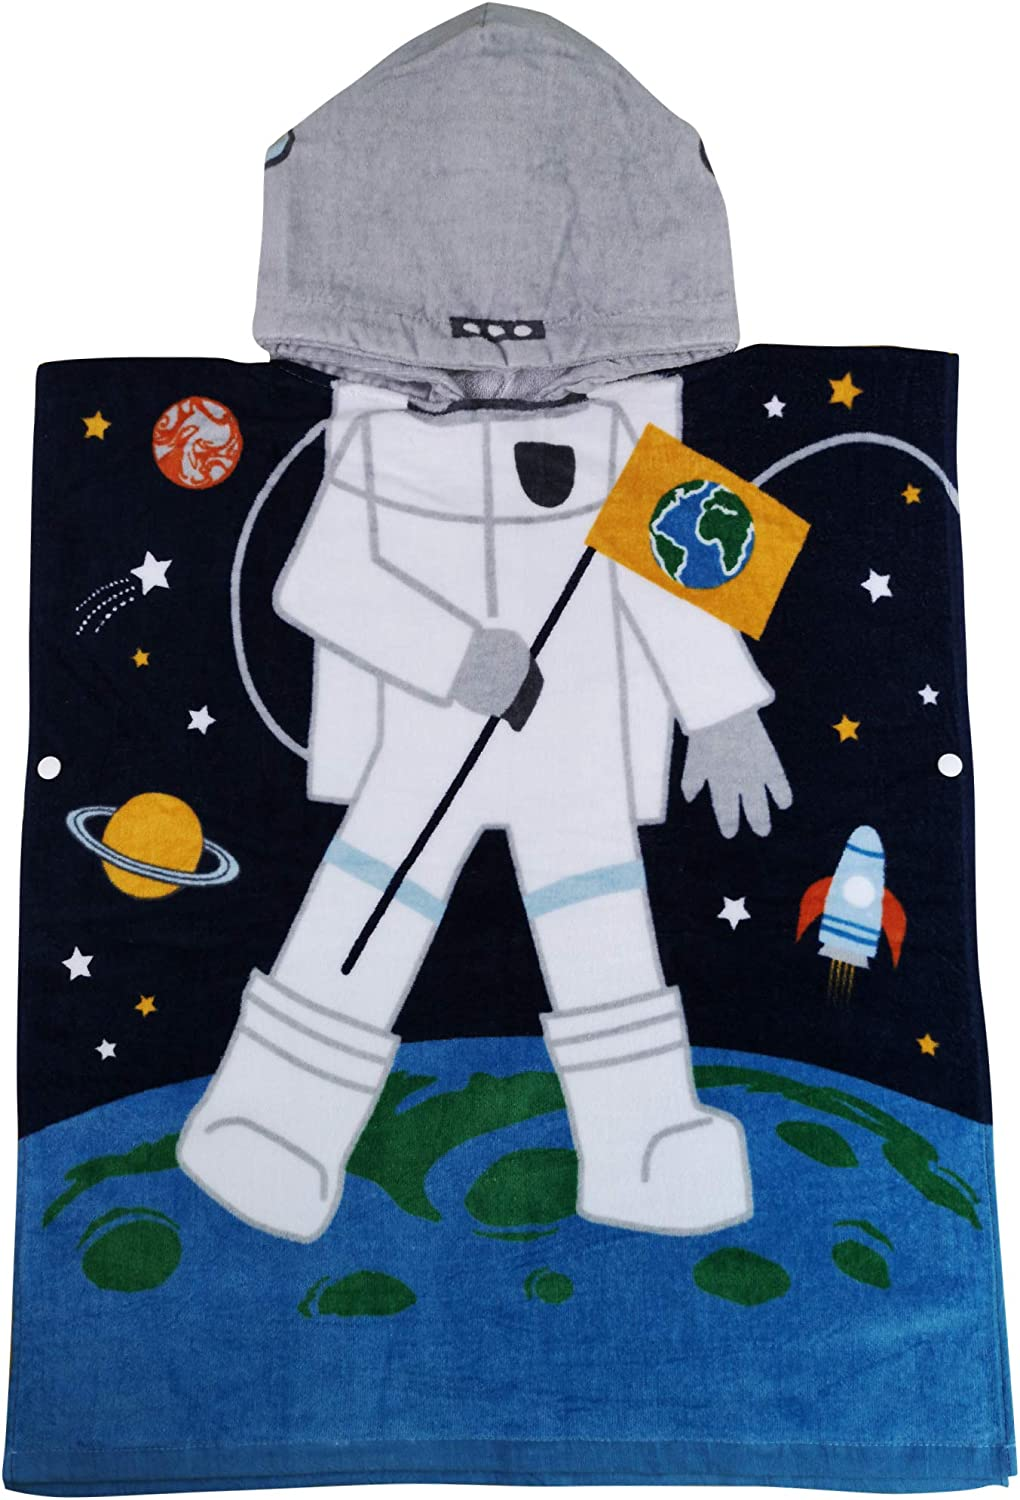 Athaelay Cotton Beach Towel for Age 2-7 Years Boy/Girl Toddlers and Kids, Multi-use for Bath/Shower/Pool/Swim, Hooded Poncho Bathrobe, Astronaut Theme